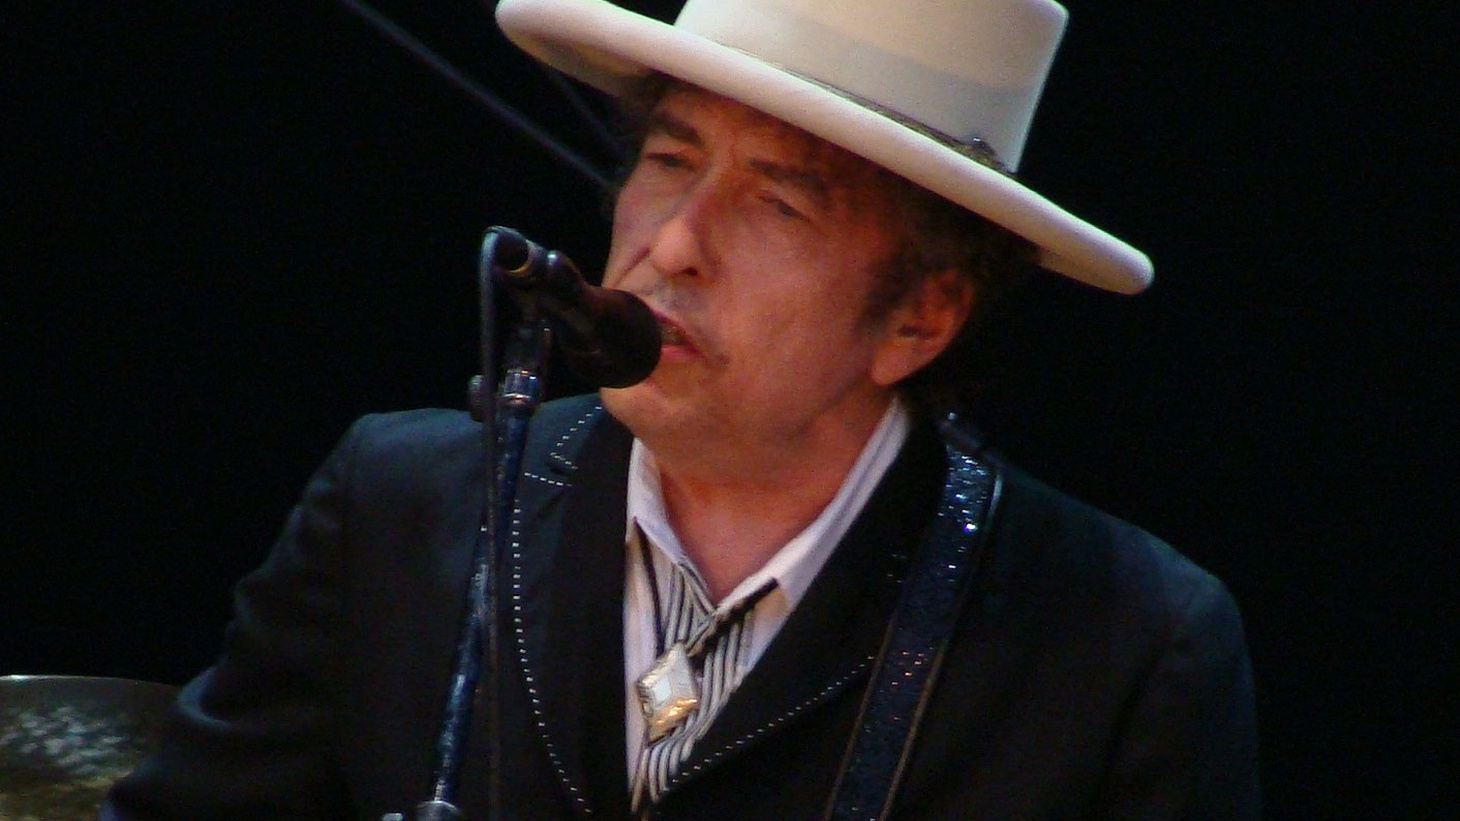 Today, the Secretary of the Swedish Academy announced  this year's Nobel Prize for Literature . It goes to a poet favored by President Obama and Salman Rushdie, but the winner is still a surprise: singer and song writer  Bob Dylan .